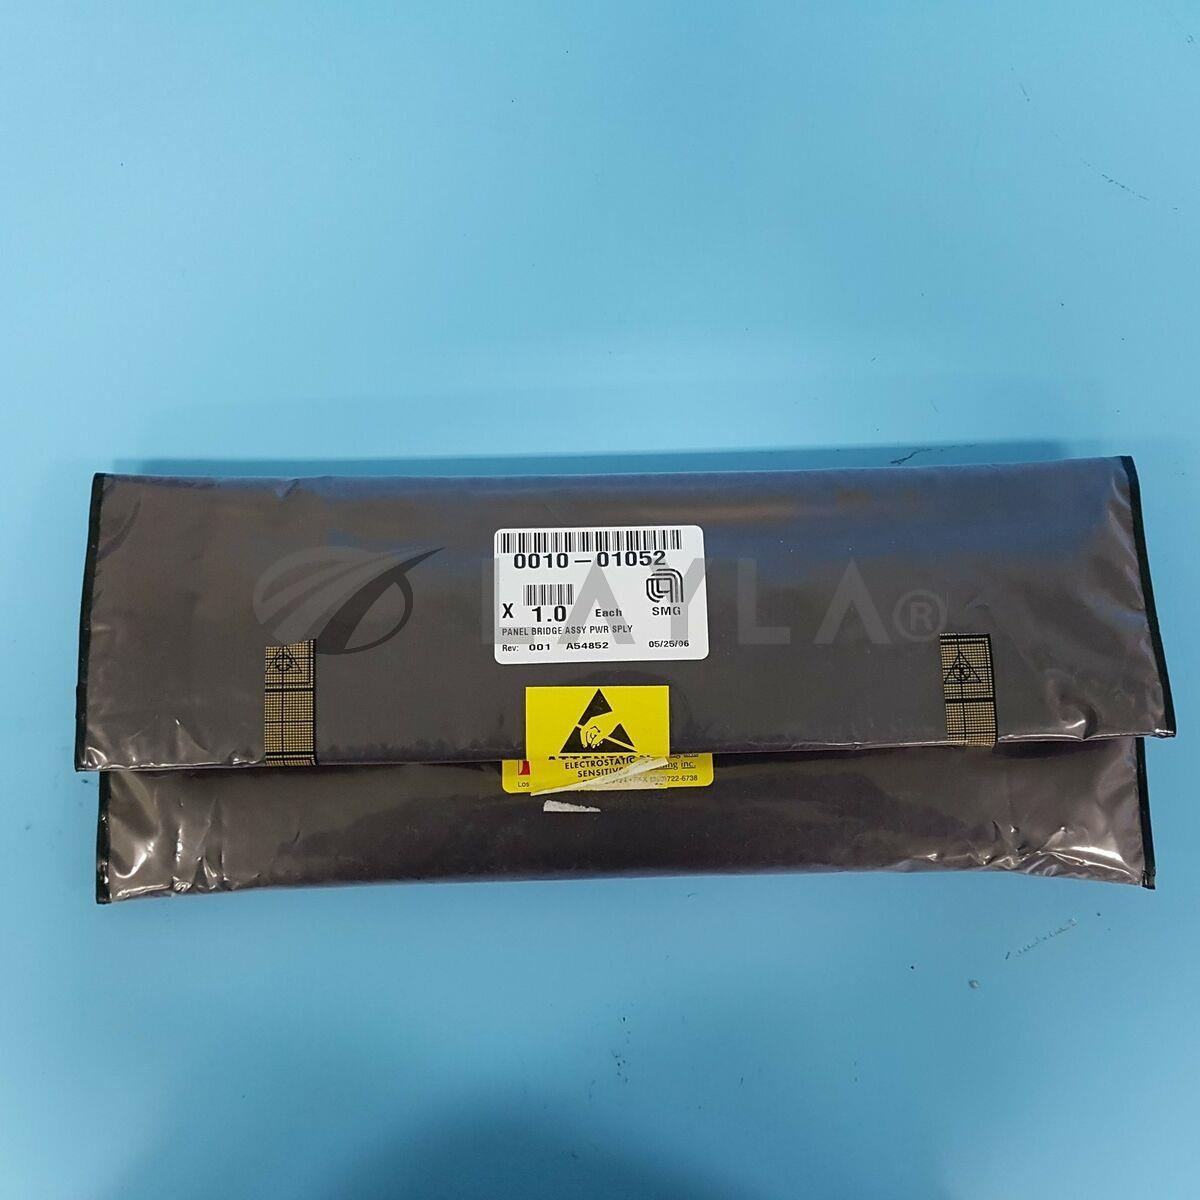 0010-01052/-/342-0203// AMAT APPLIED 0010-01052 PANEL BRIDGE ASSY PWR SPLY NEW/-/-_01